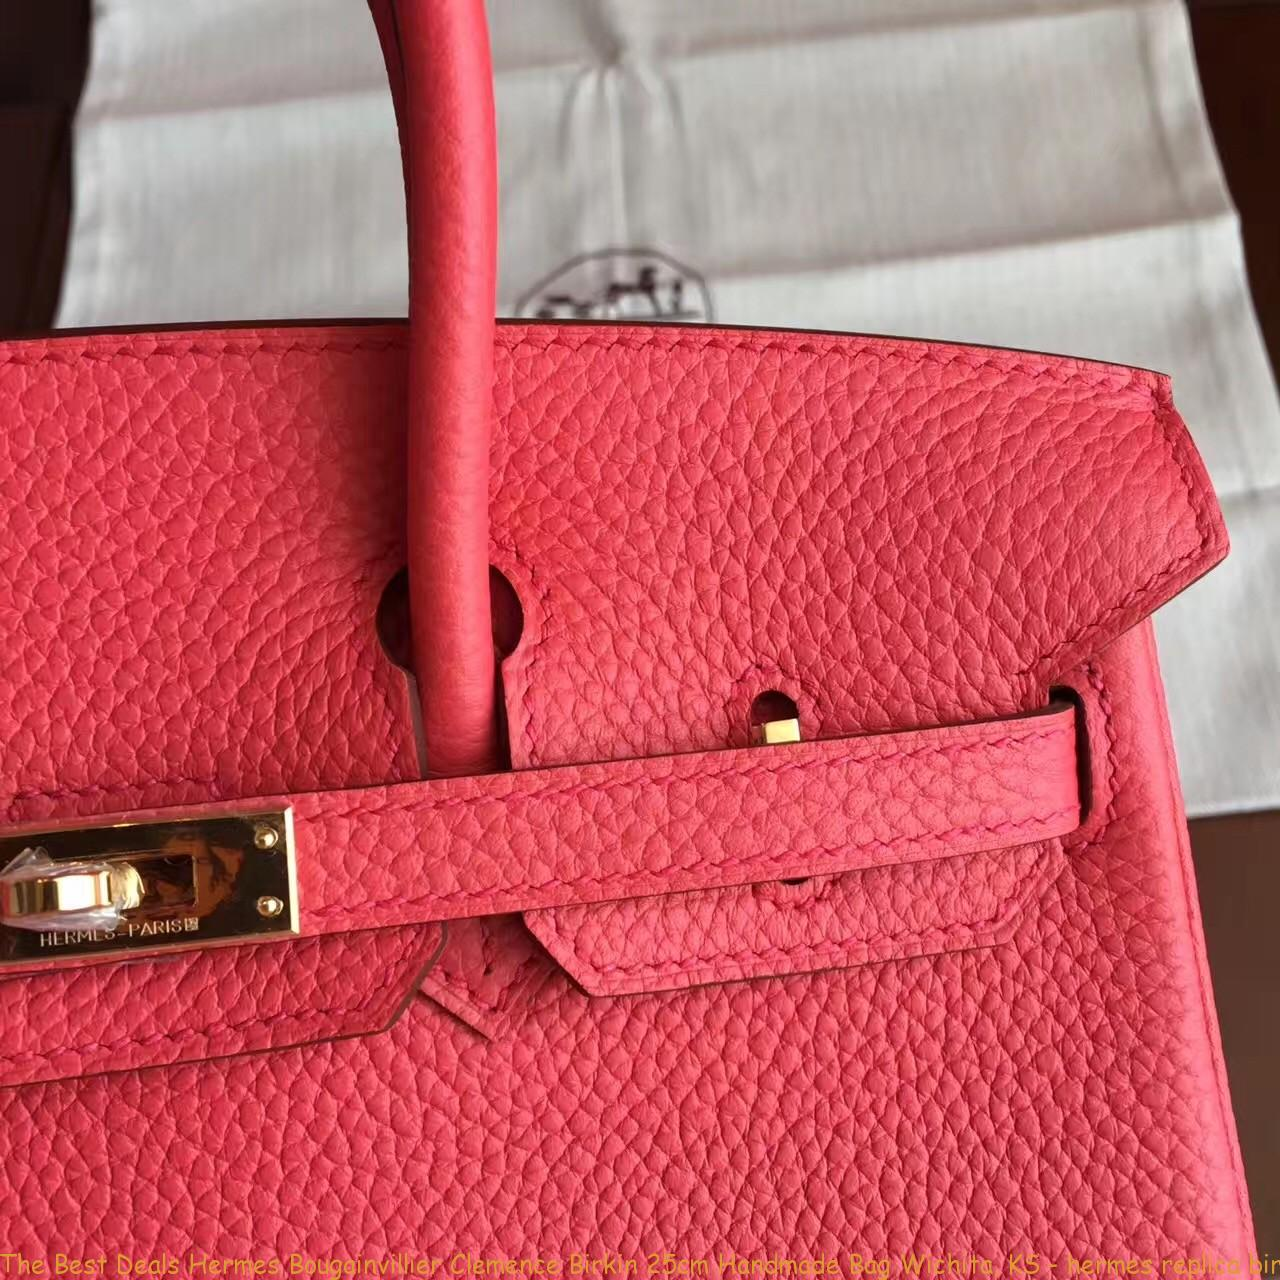 a181903c655 The Best Deals Hermes Bougainvillier Clemence Birkin 25cm Handmade Bag  Wichita, KS – hermes replica ...